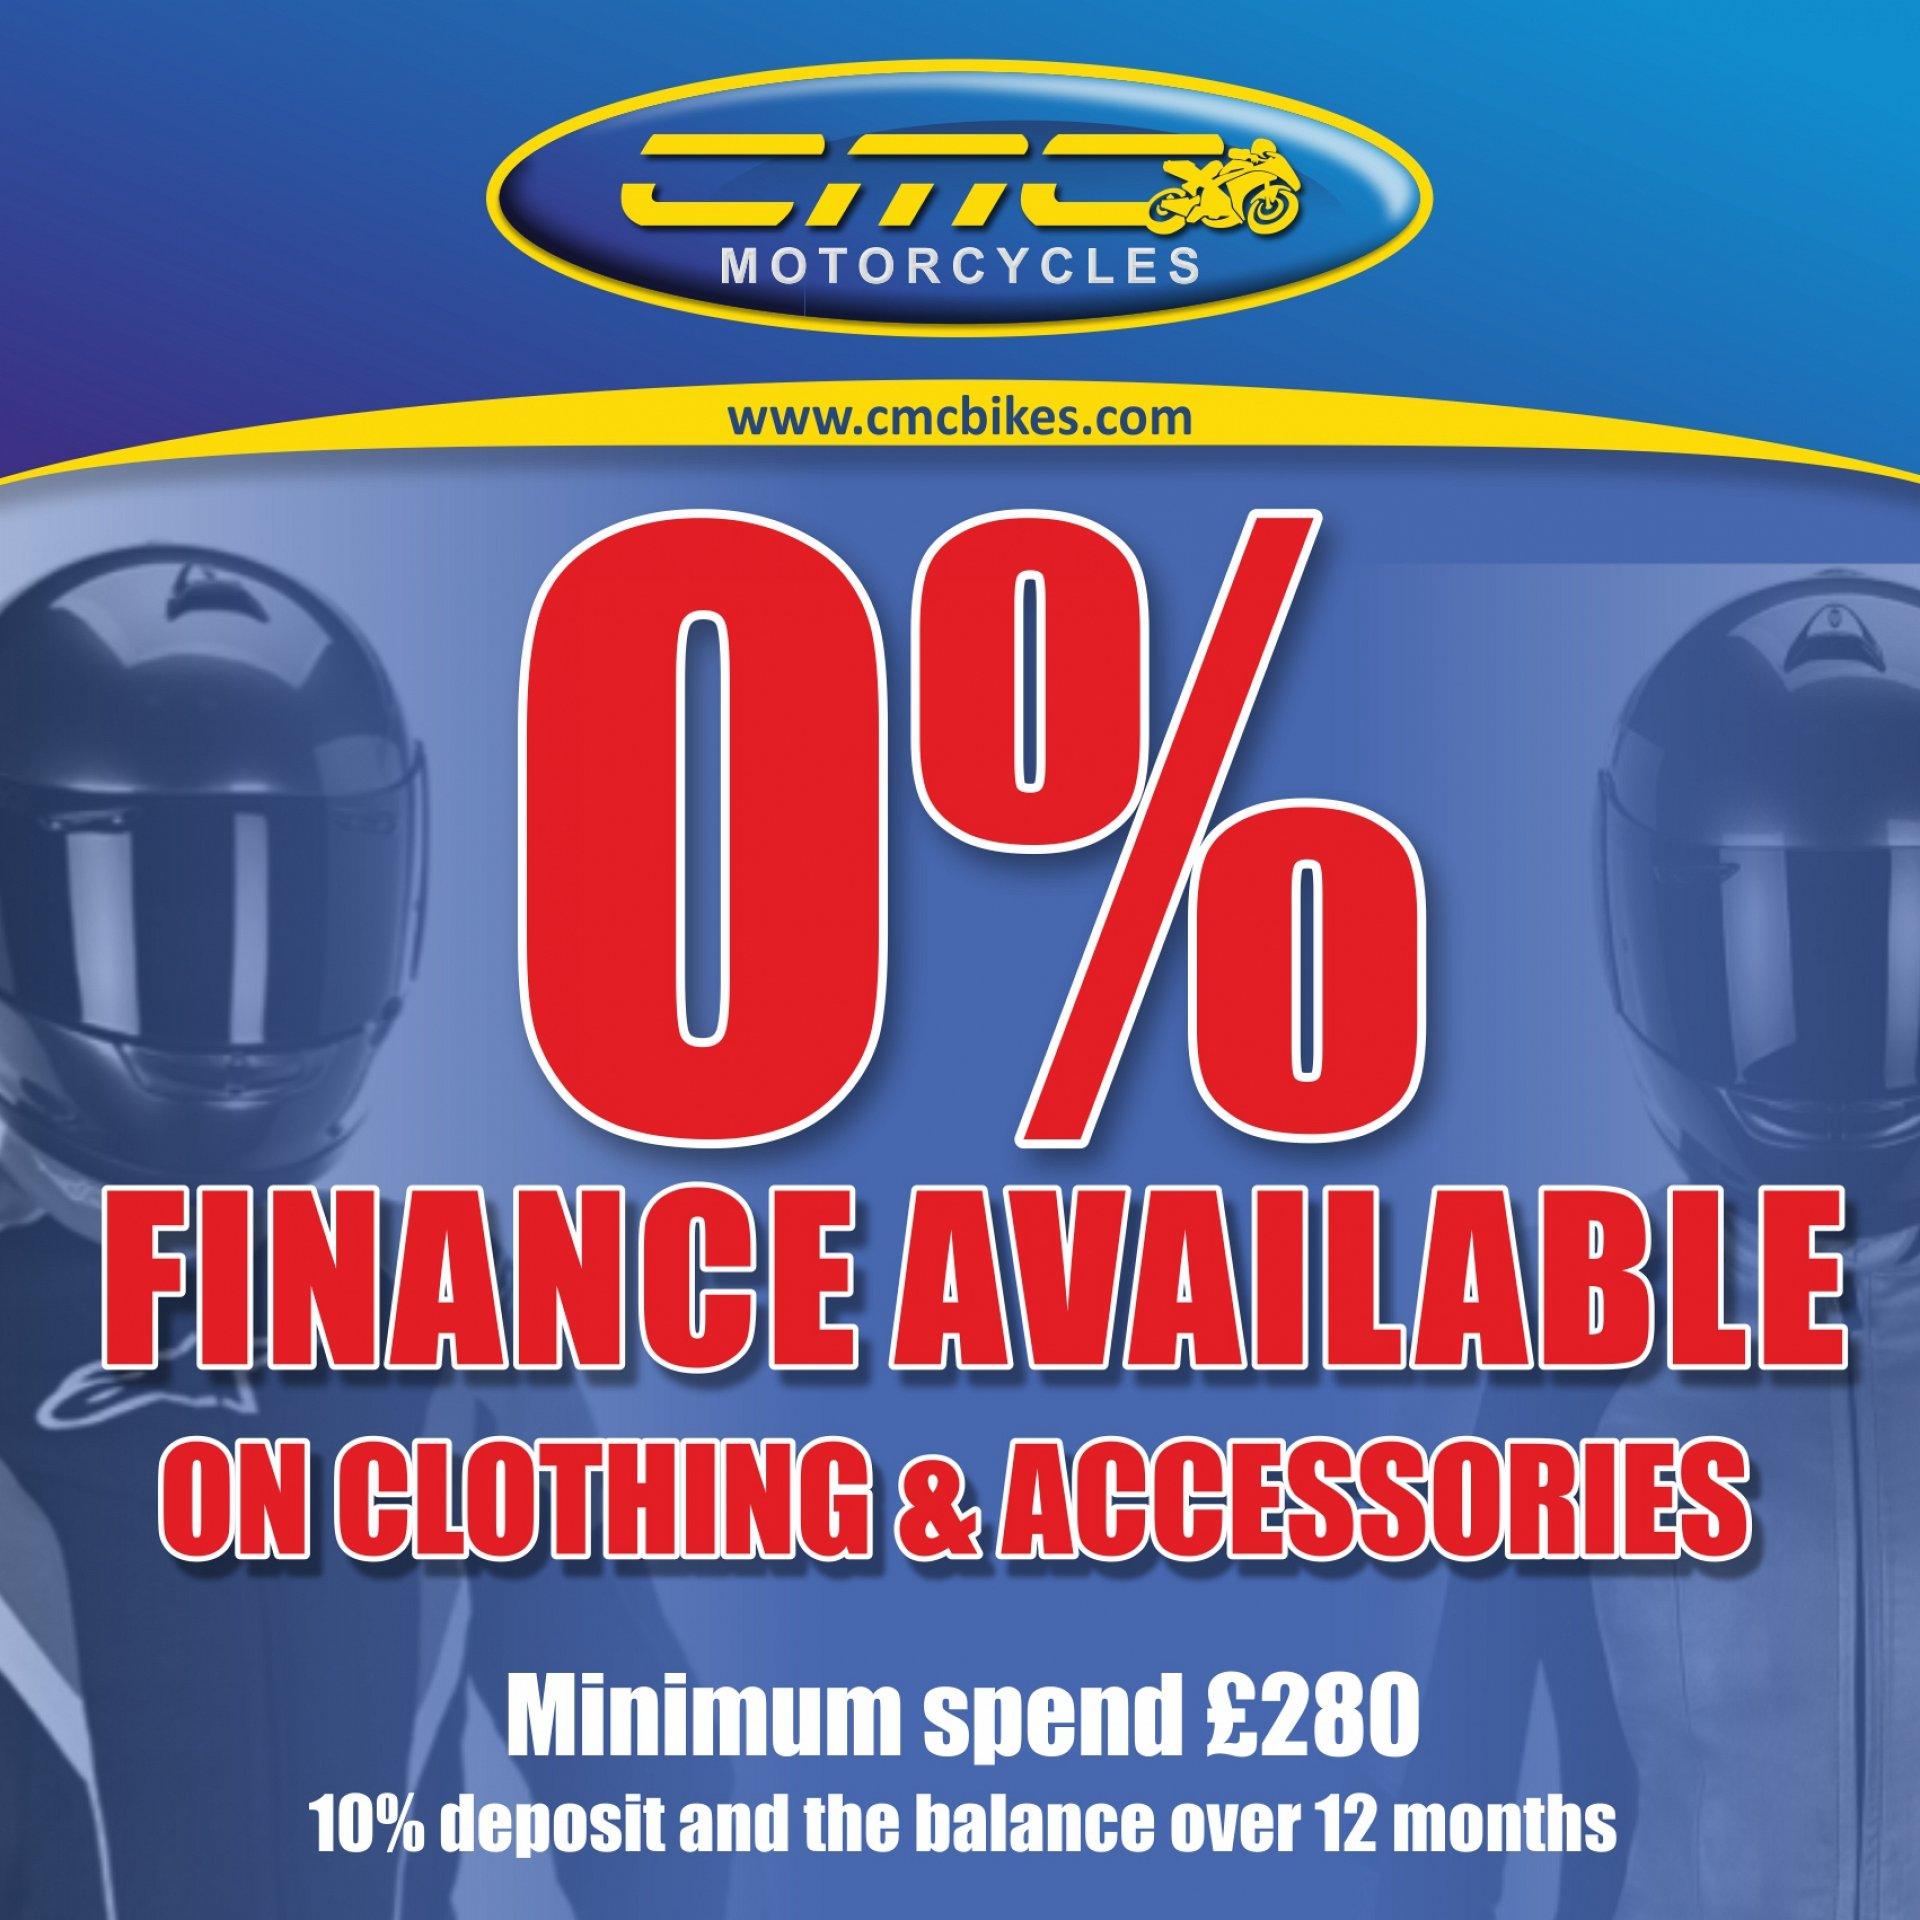 Spread the cost of your new clothing or accessories over 12 months. Available in store!